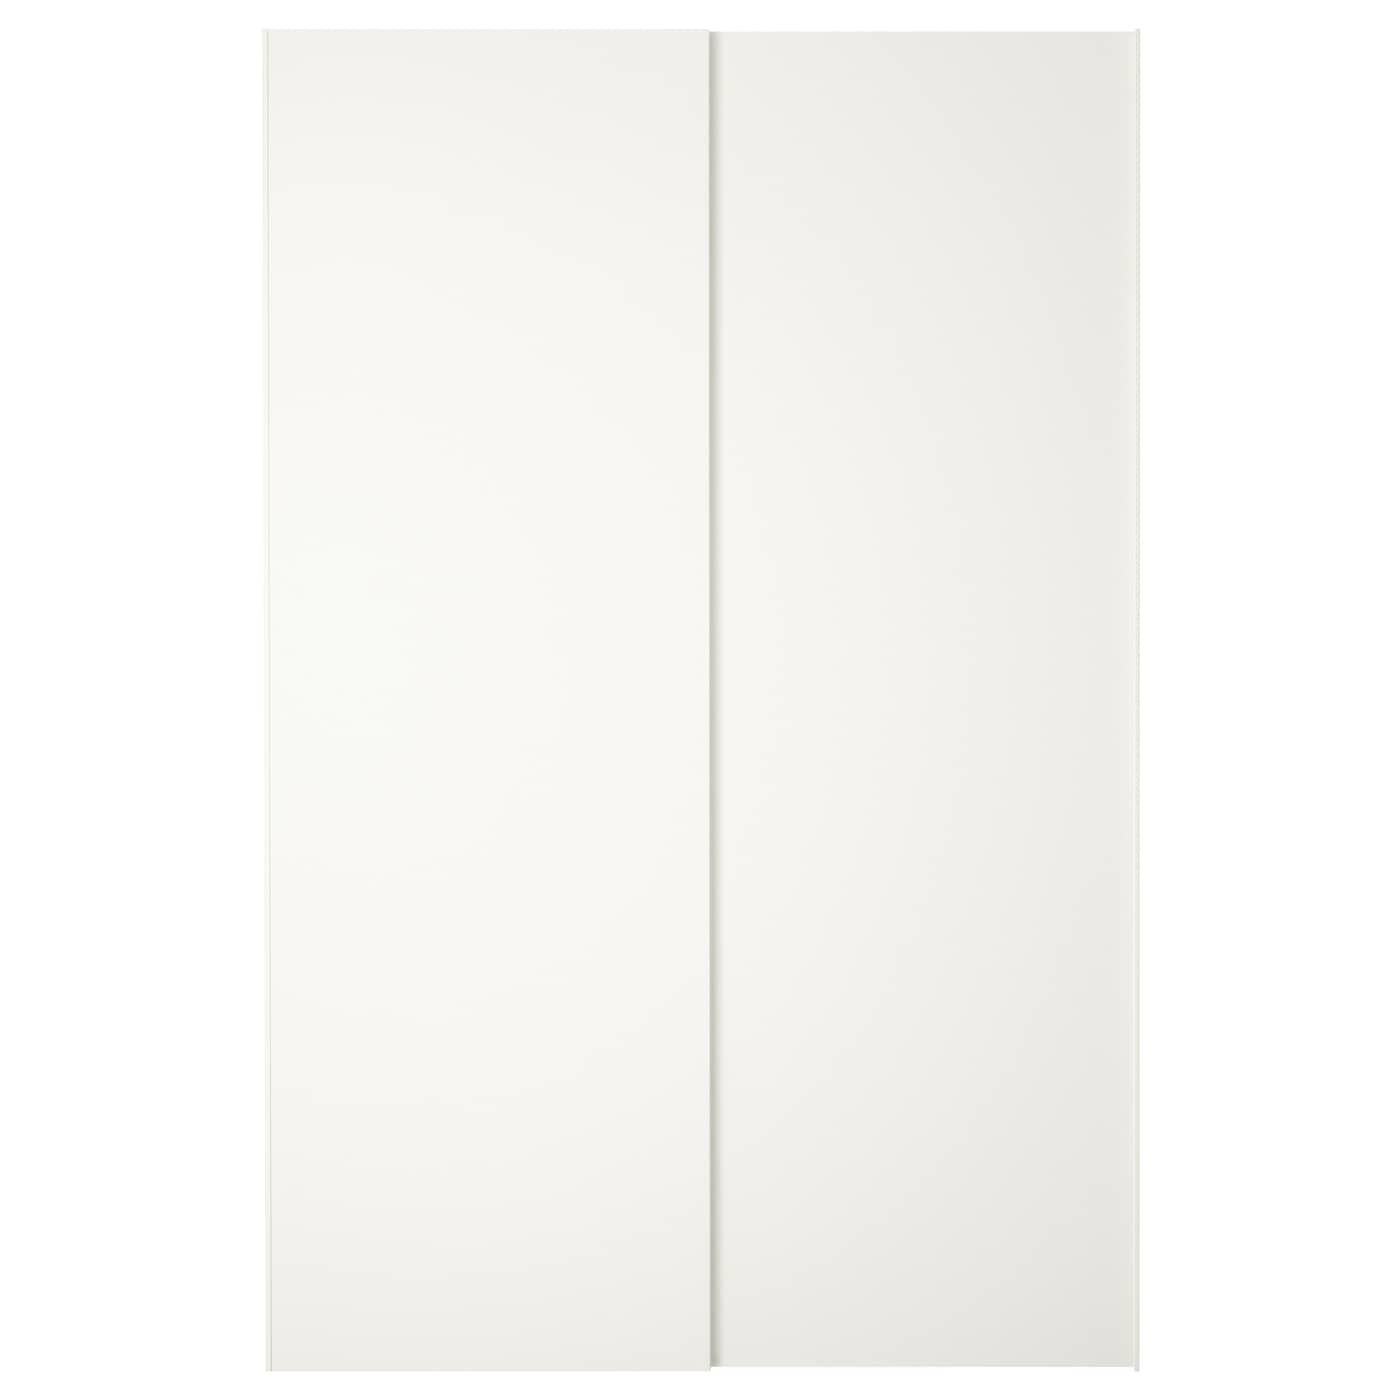 ikea hasvik pair of sliding doors 10 year guarantee read about the terms in the